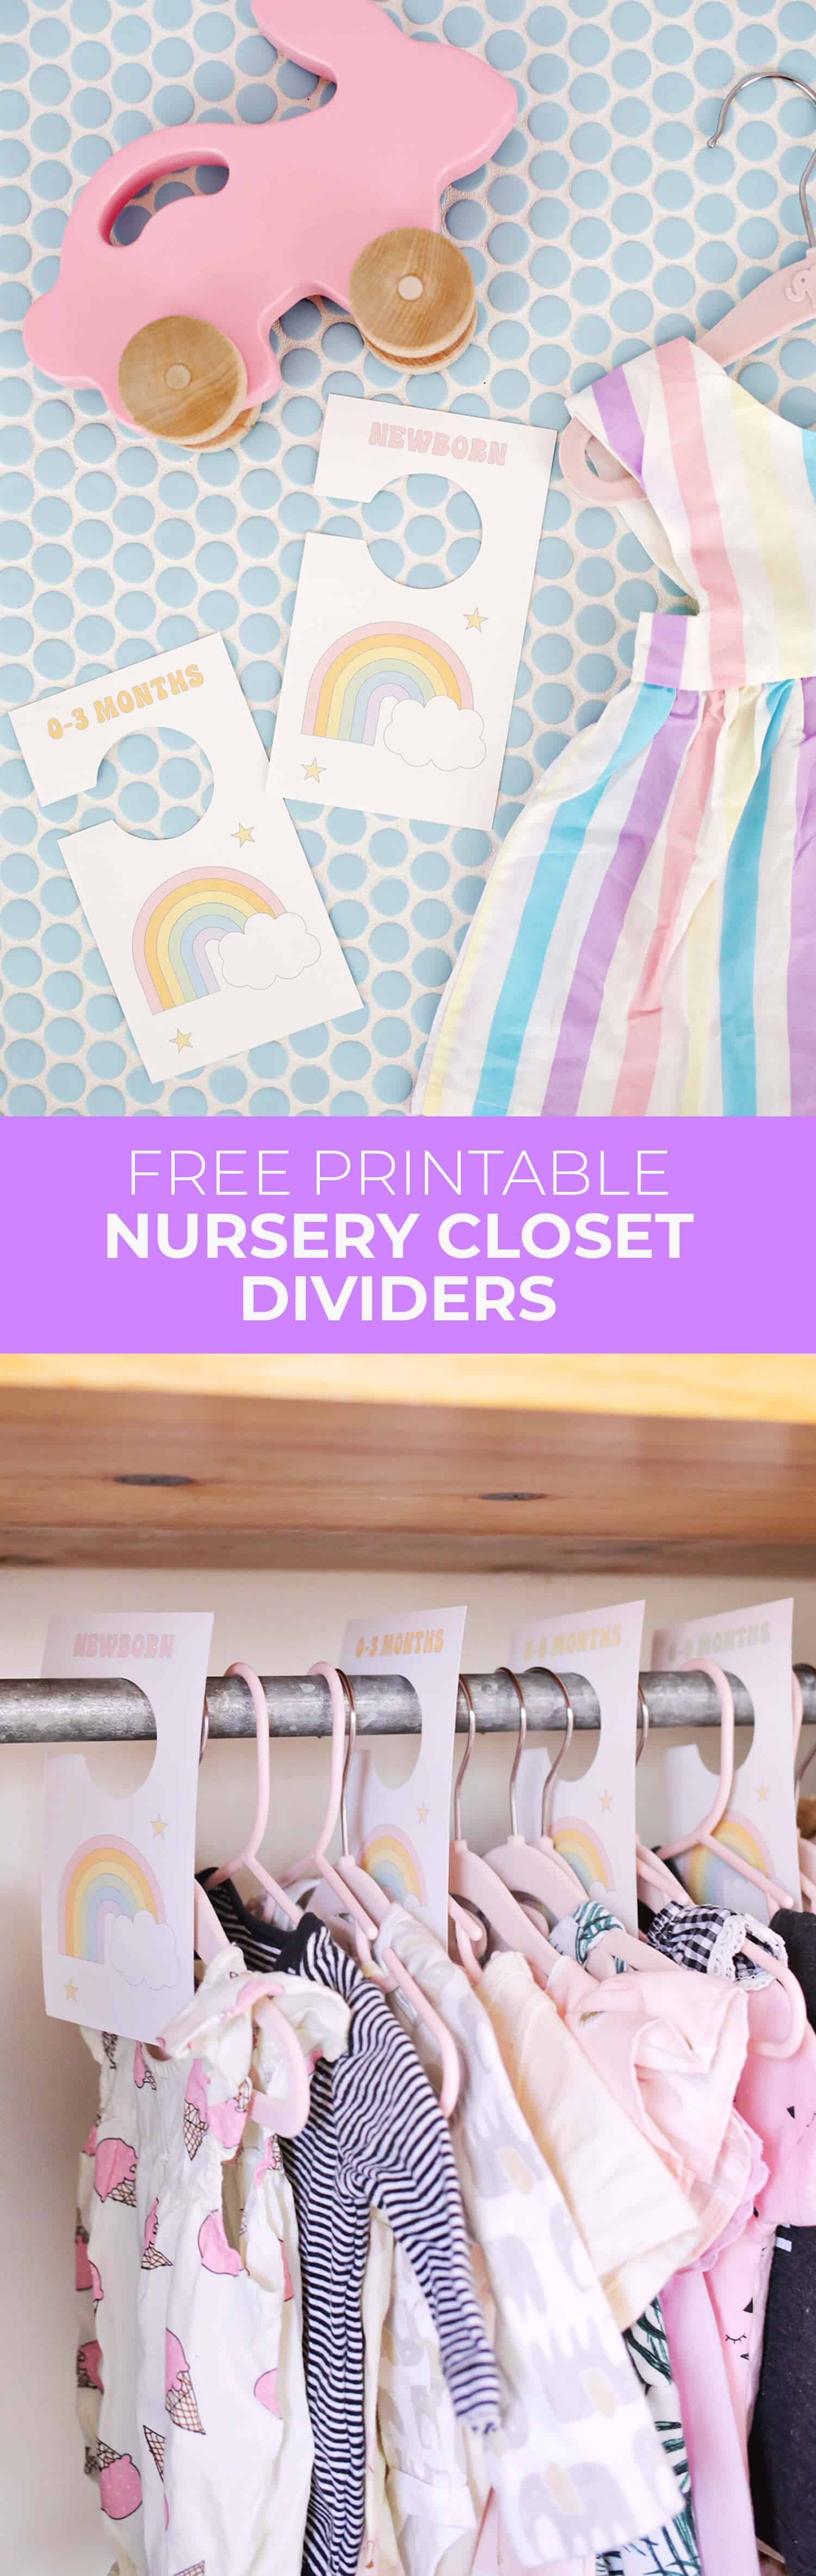 photo relating to Free Printable Closet Dividers named Nursery Closet Dividers (No cost Printable!) - A Eye-catching Mess